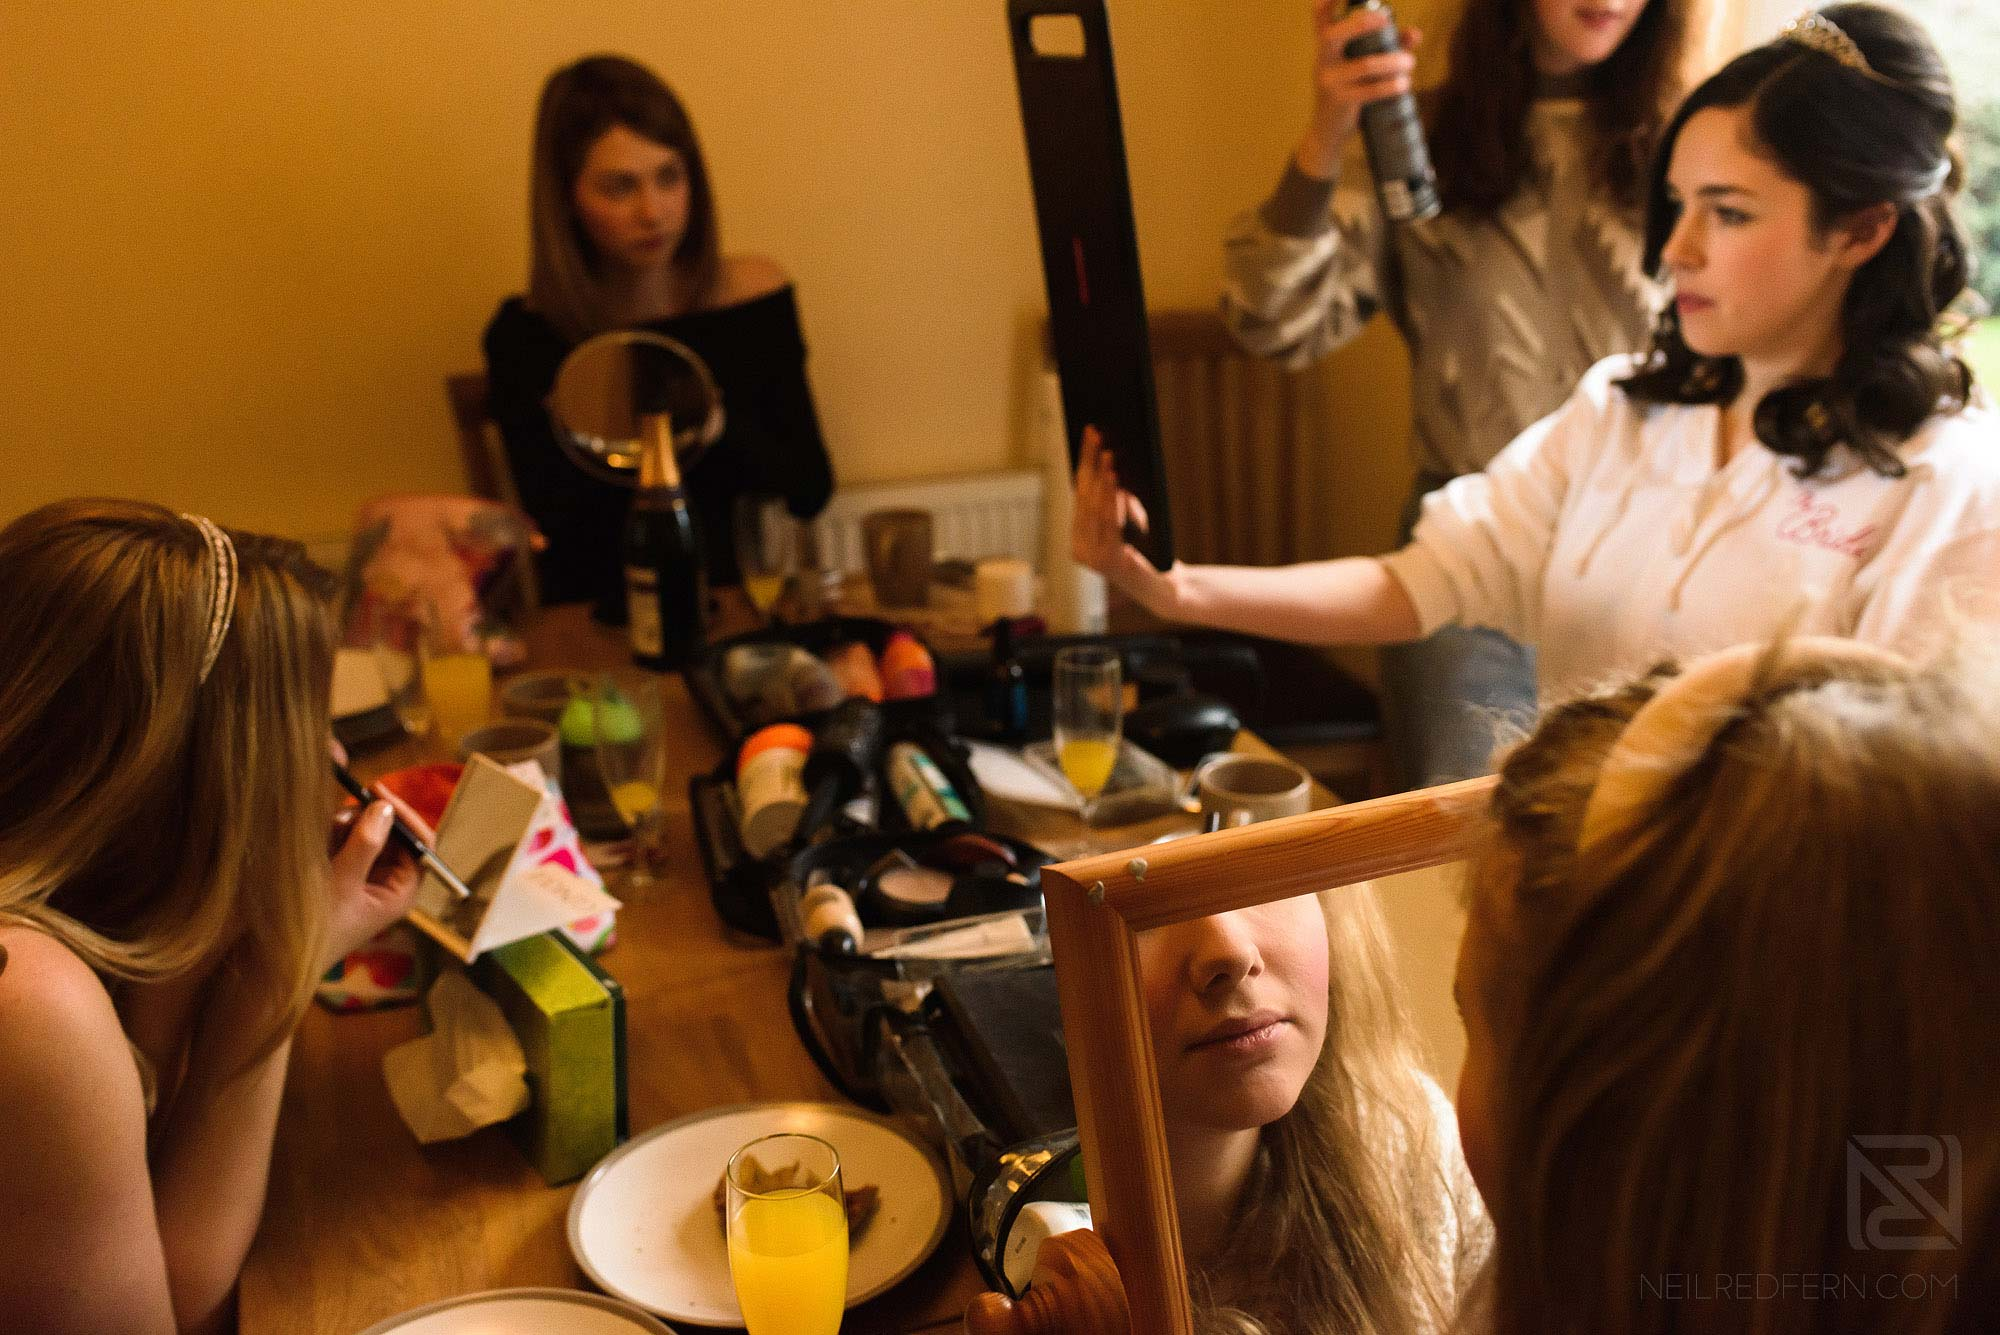 bridesmaids getting ready together on wedding morning